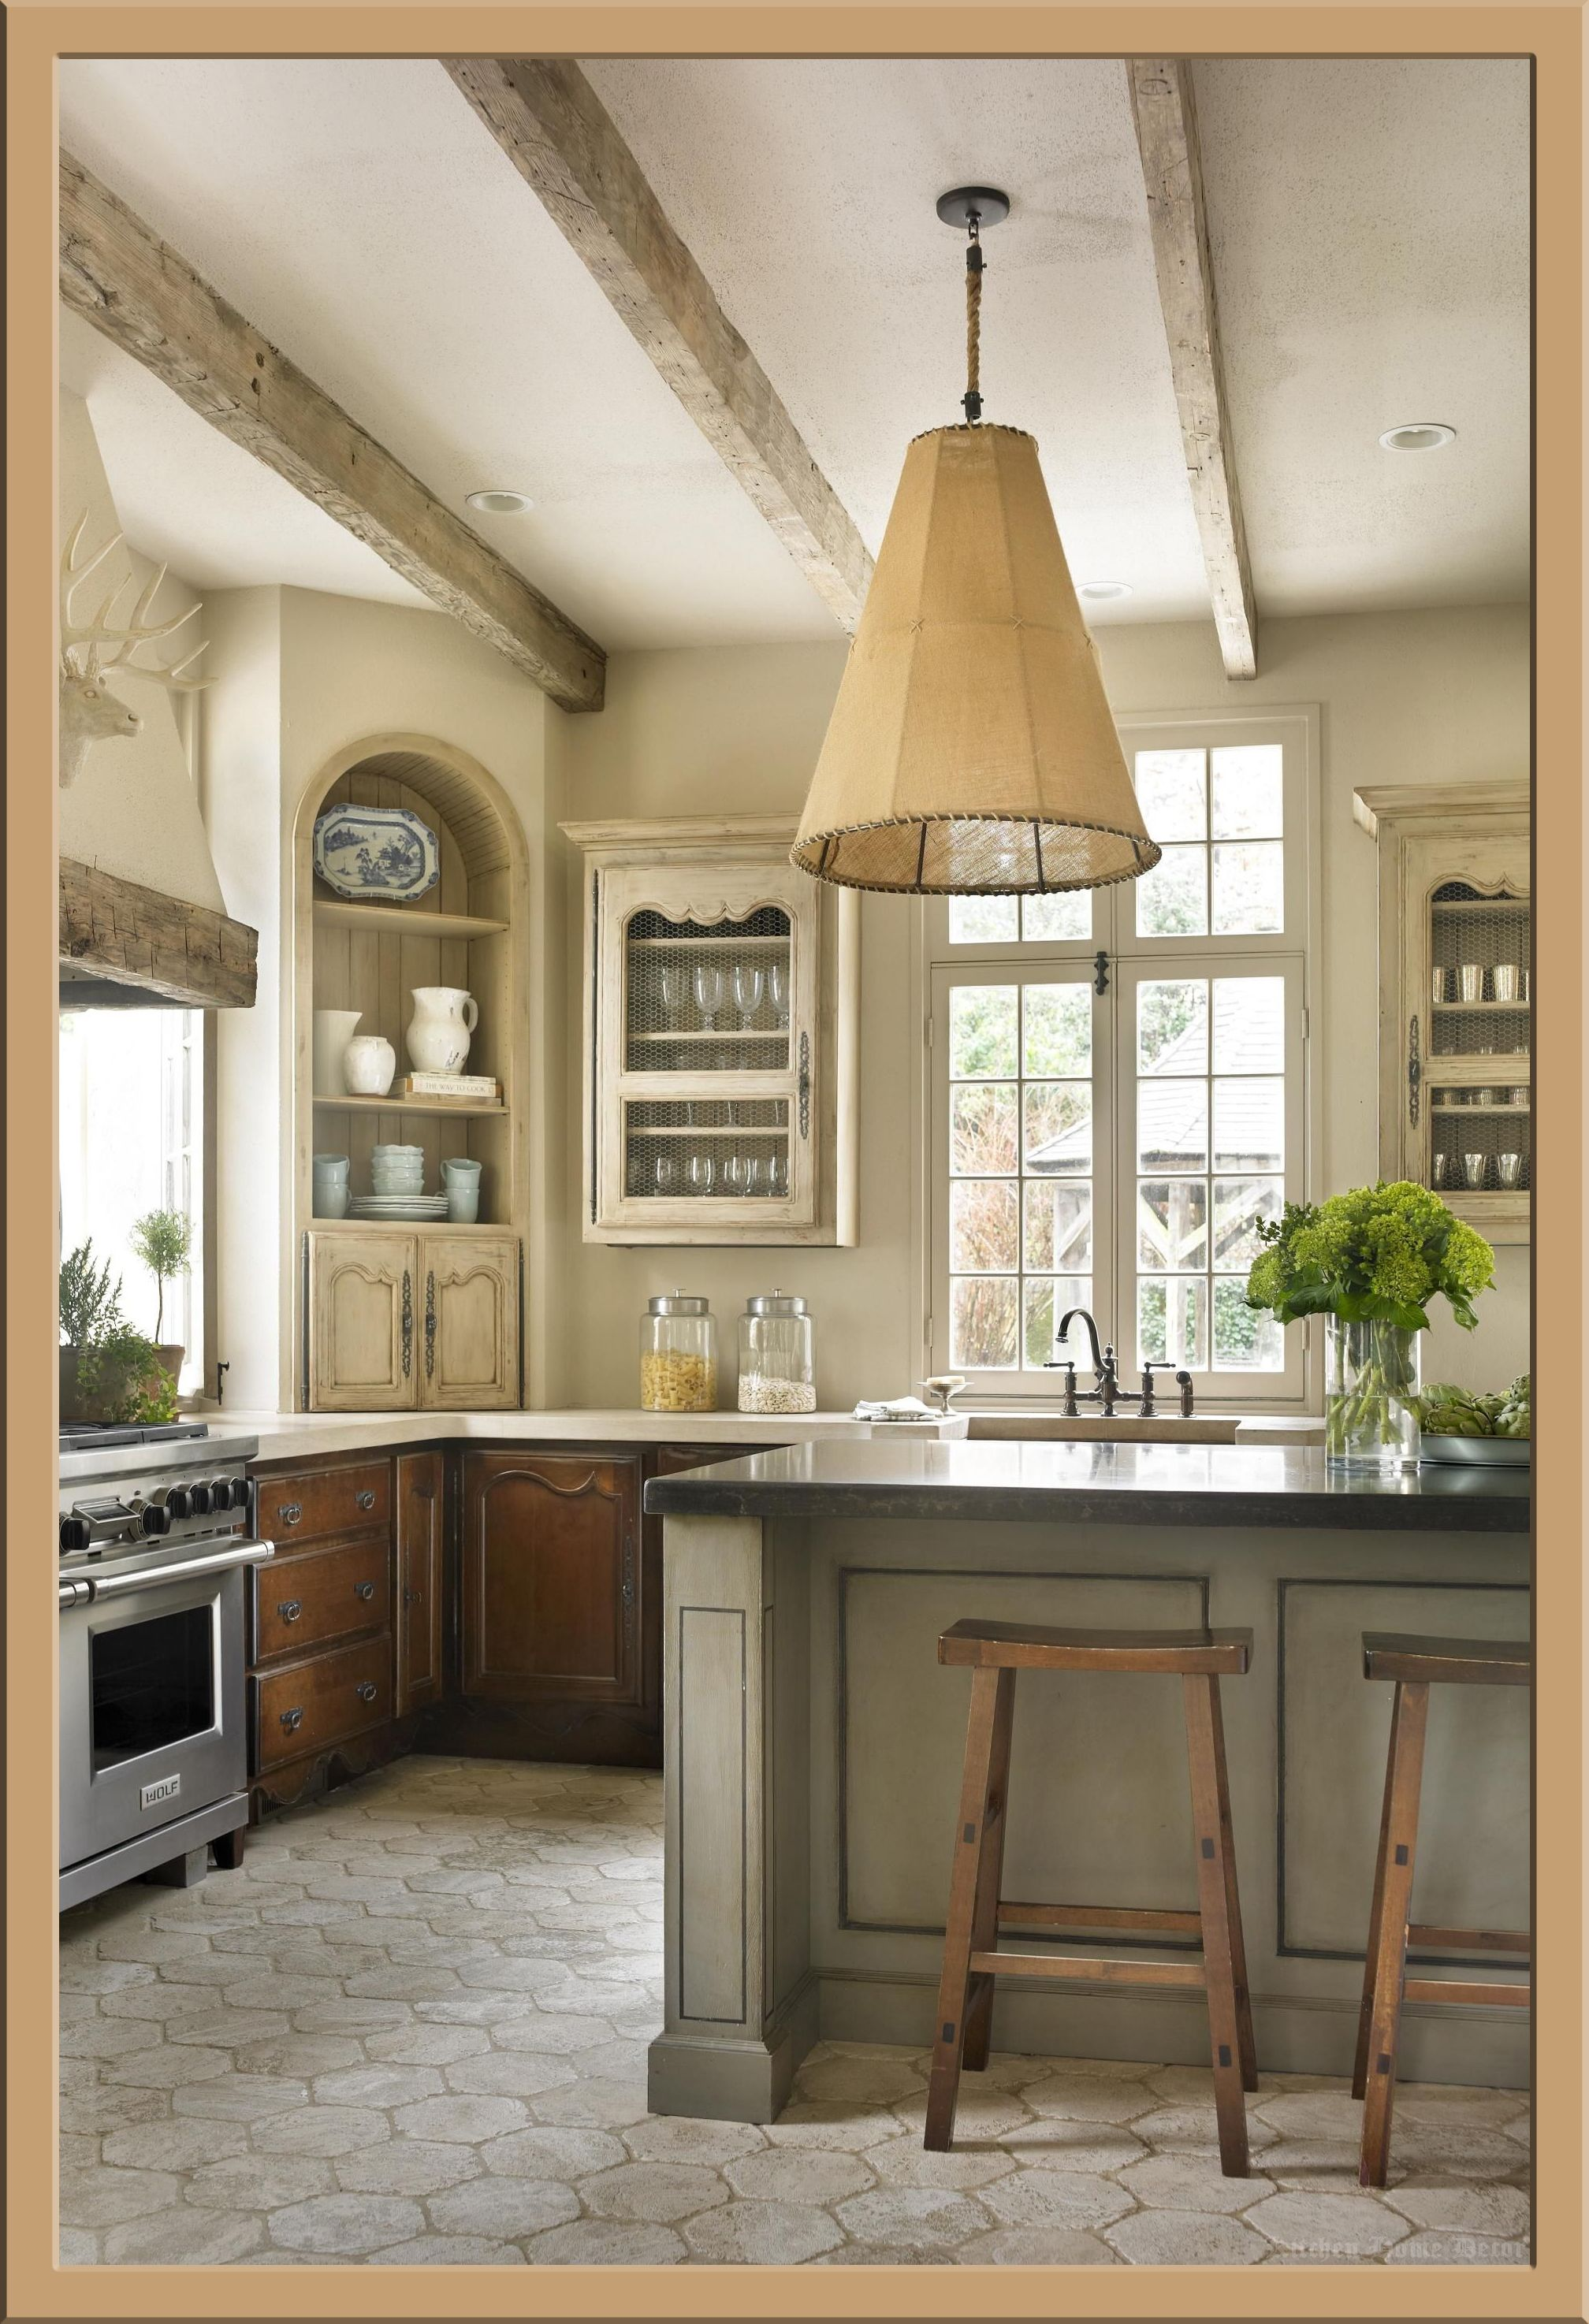 5 Tricks About Kitchen Decor You Wish You Knew Before